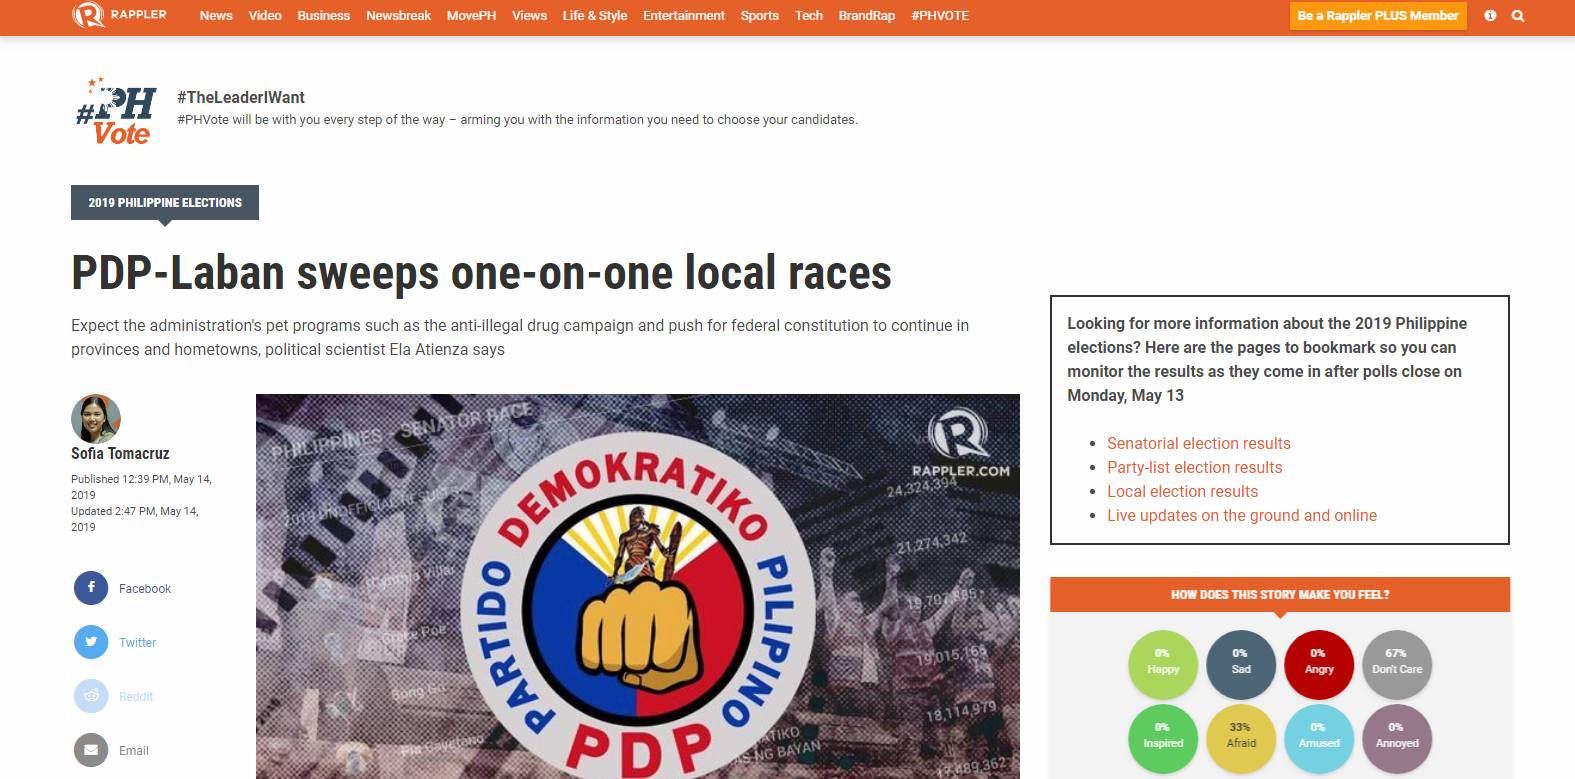 PDP-Laban sweeps one-on-one local races